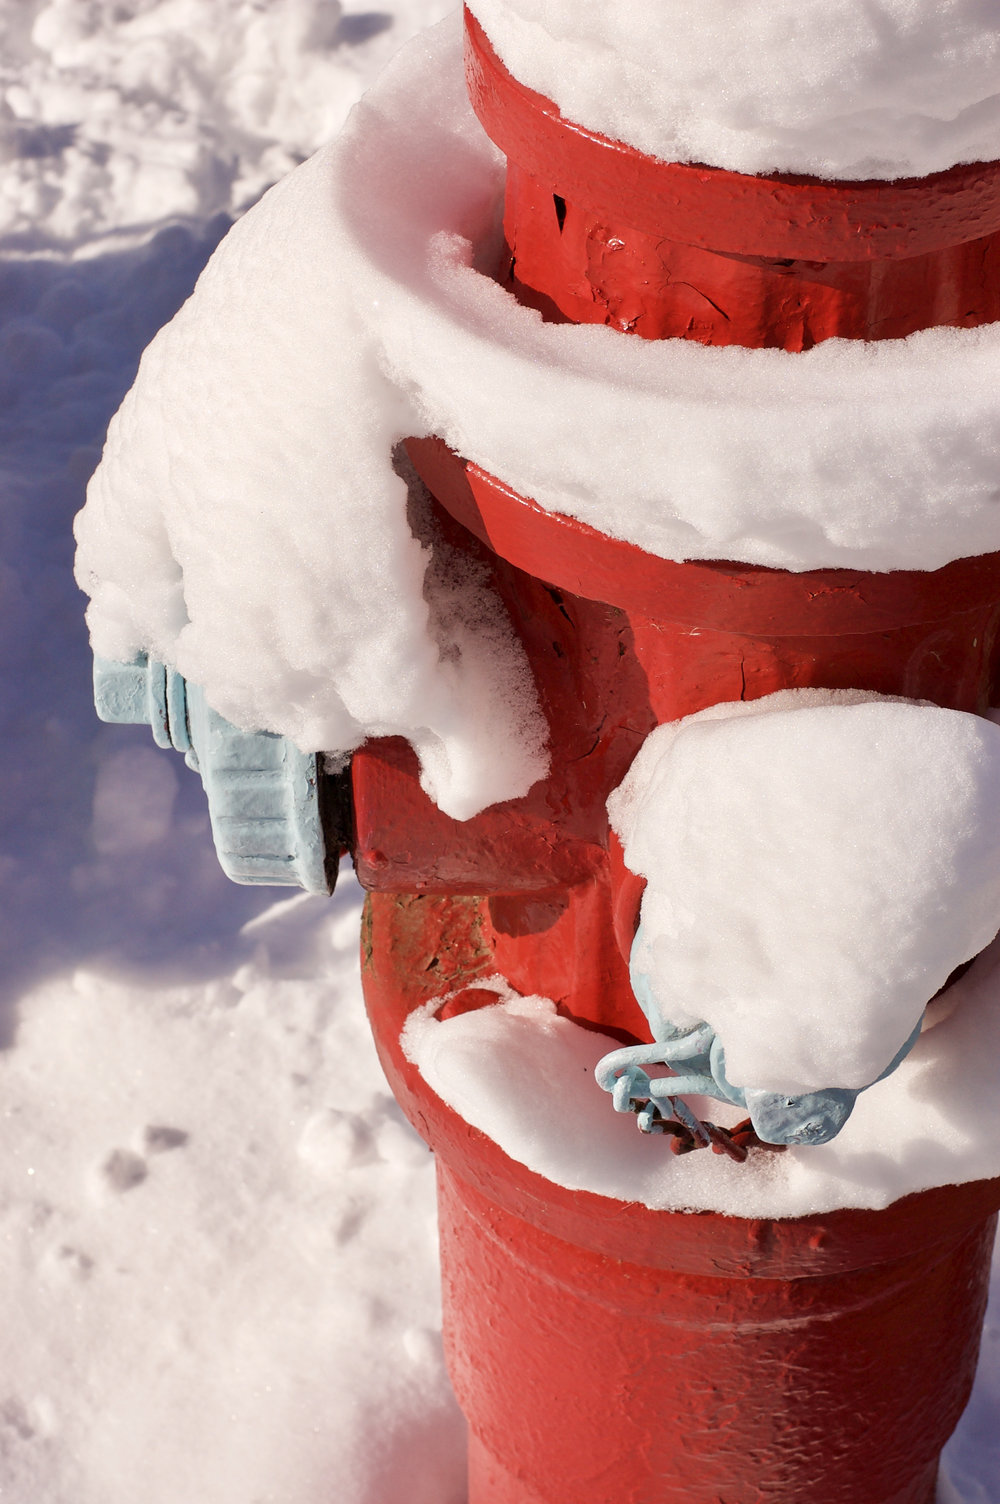 Snow Hydrant. Madison, Wisconsin. November 2015. © William D. Walker